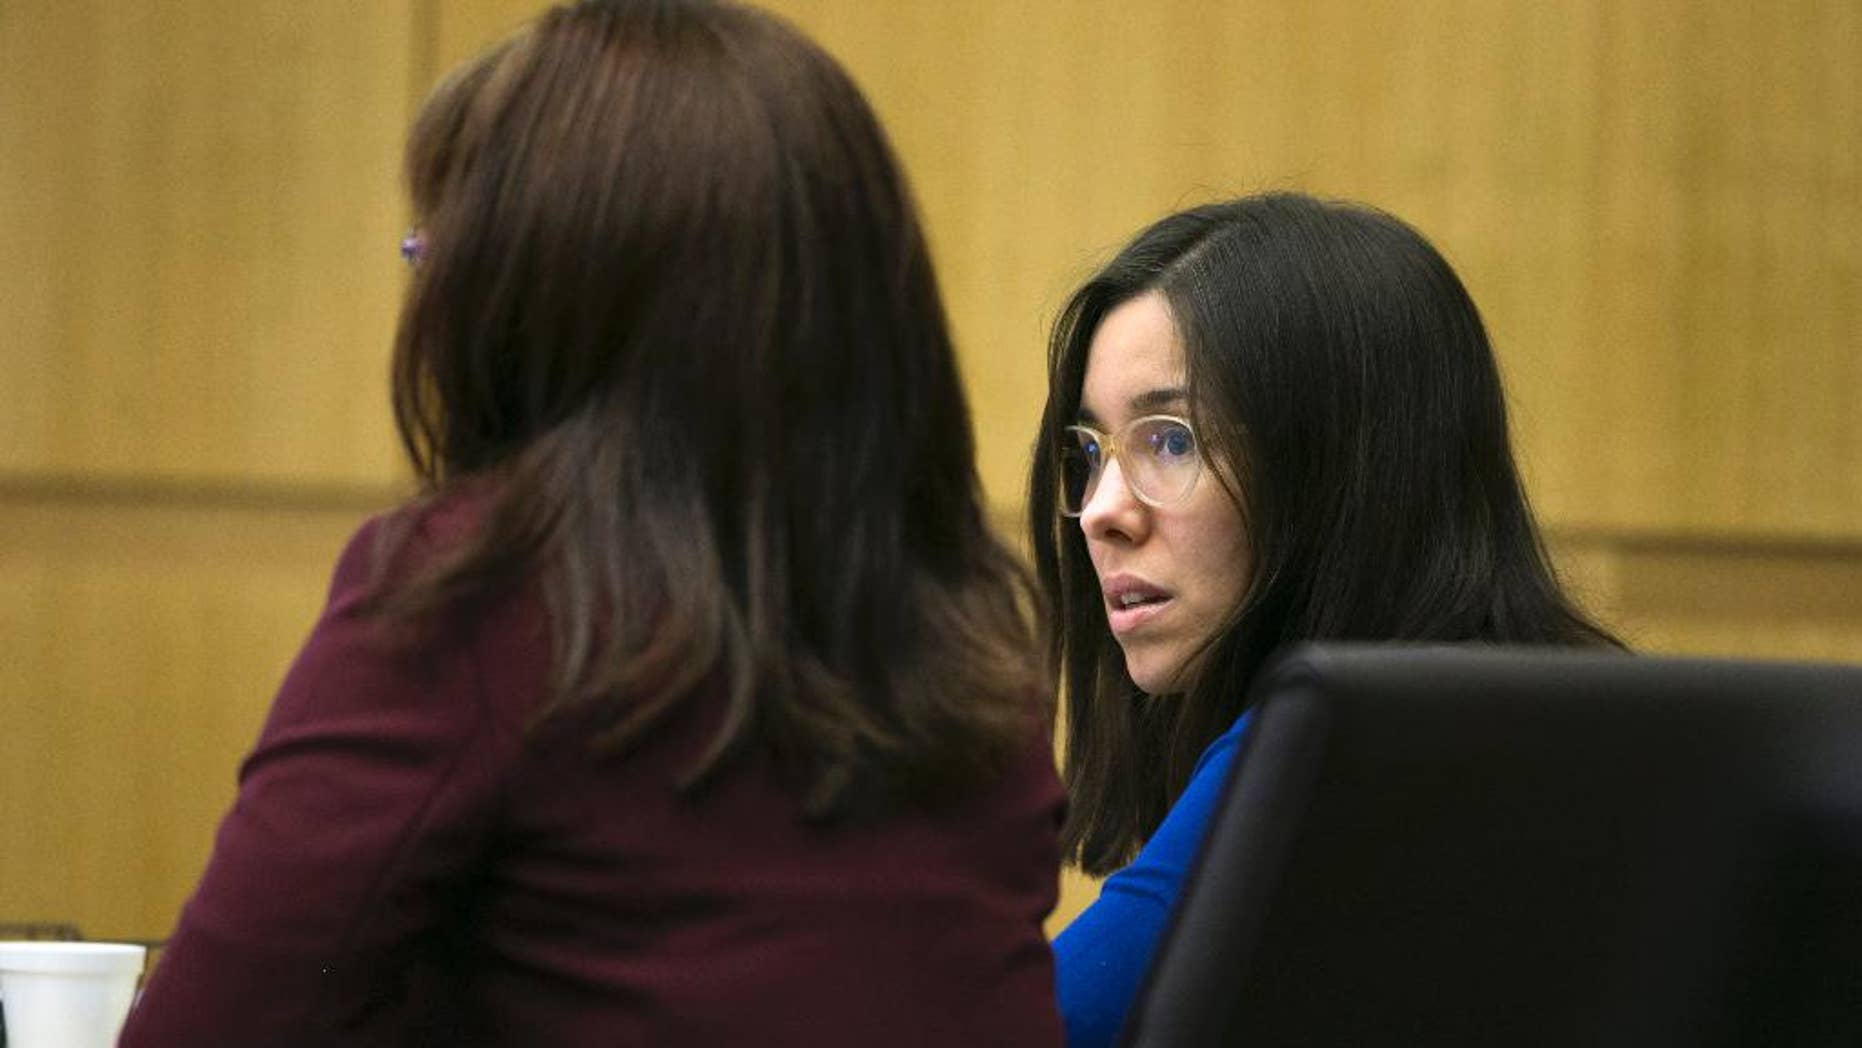 Jodi Arias, right, sits next to her attorney Jennifer Willmott during the sentencing phase of her retrial at Maricopa County Superior Court in Phoenix on Tuesday, Oct. 28, 2014. Arias was found guilty of first degree murder in the death of former boyfriend, Travis Alexander, but the jury hung on the sentencing phase, unable to choose life in prison or the death sentence. (AP Photo/The Arizona Republic, David Wallace, Pool)